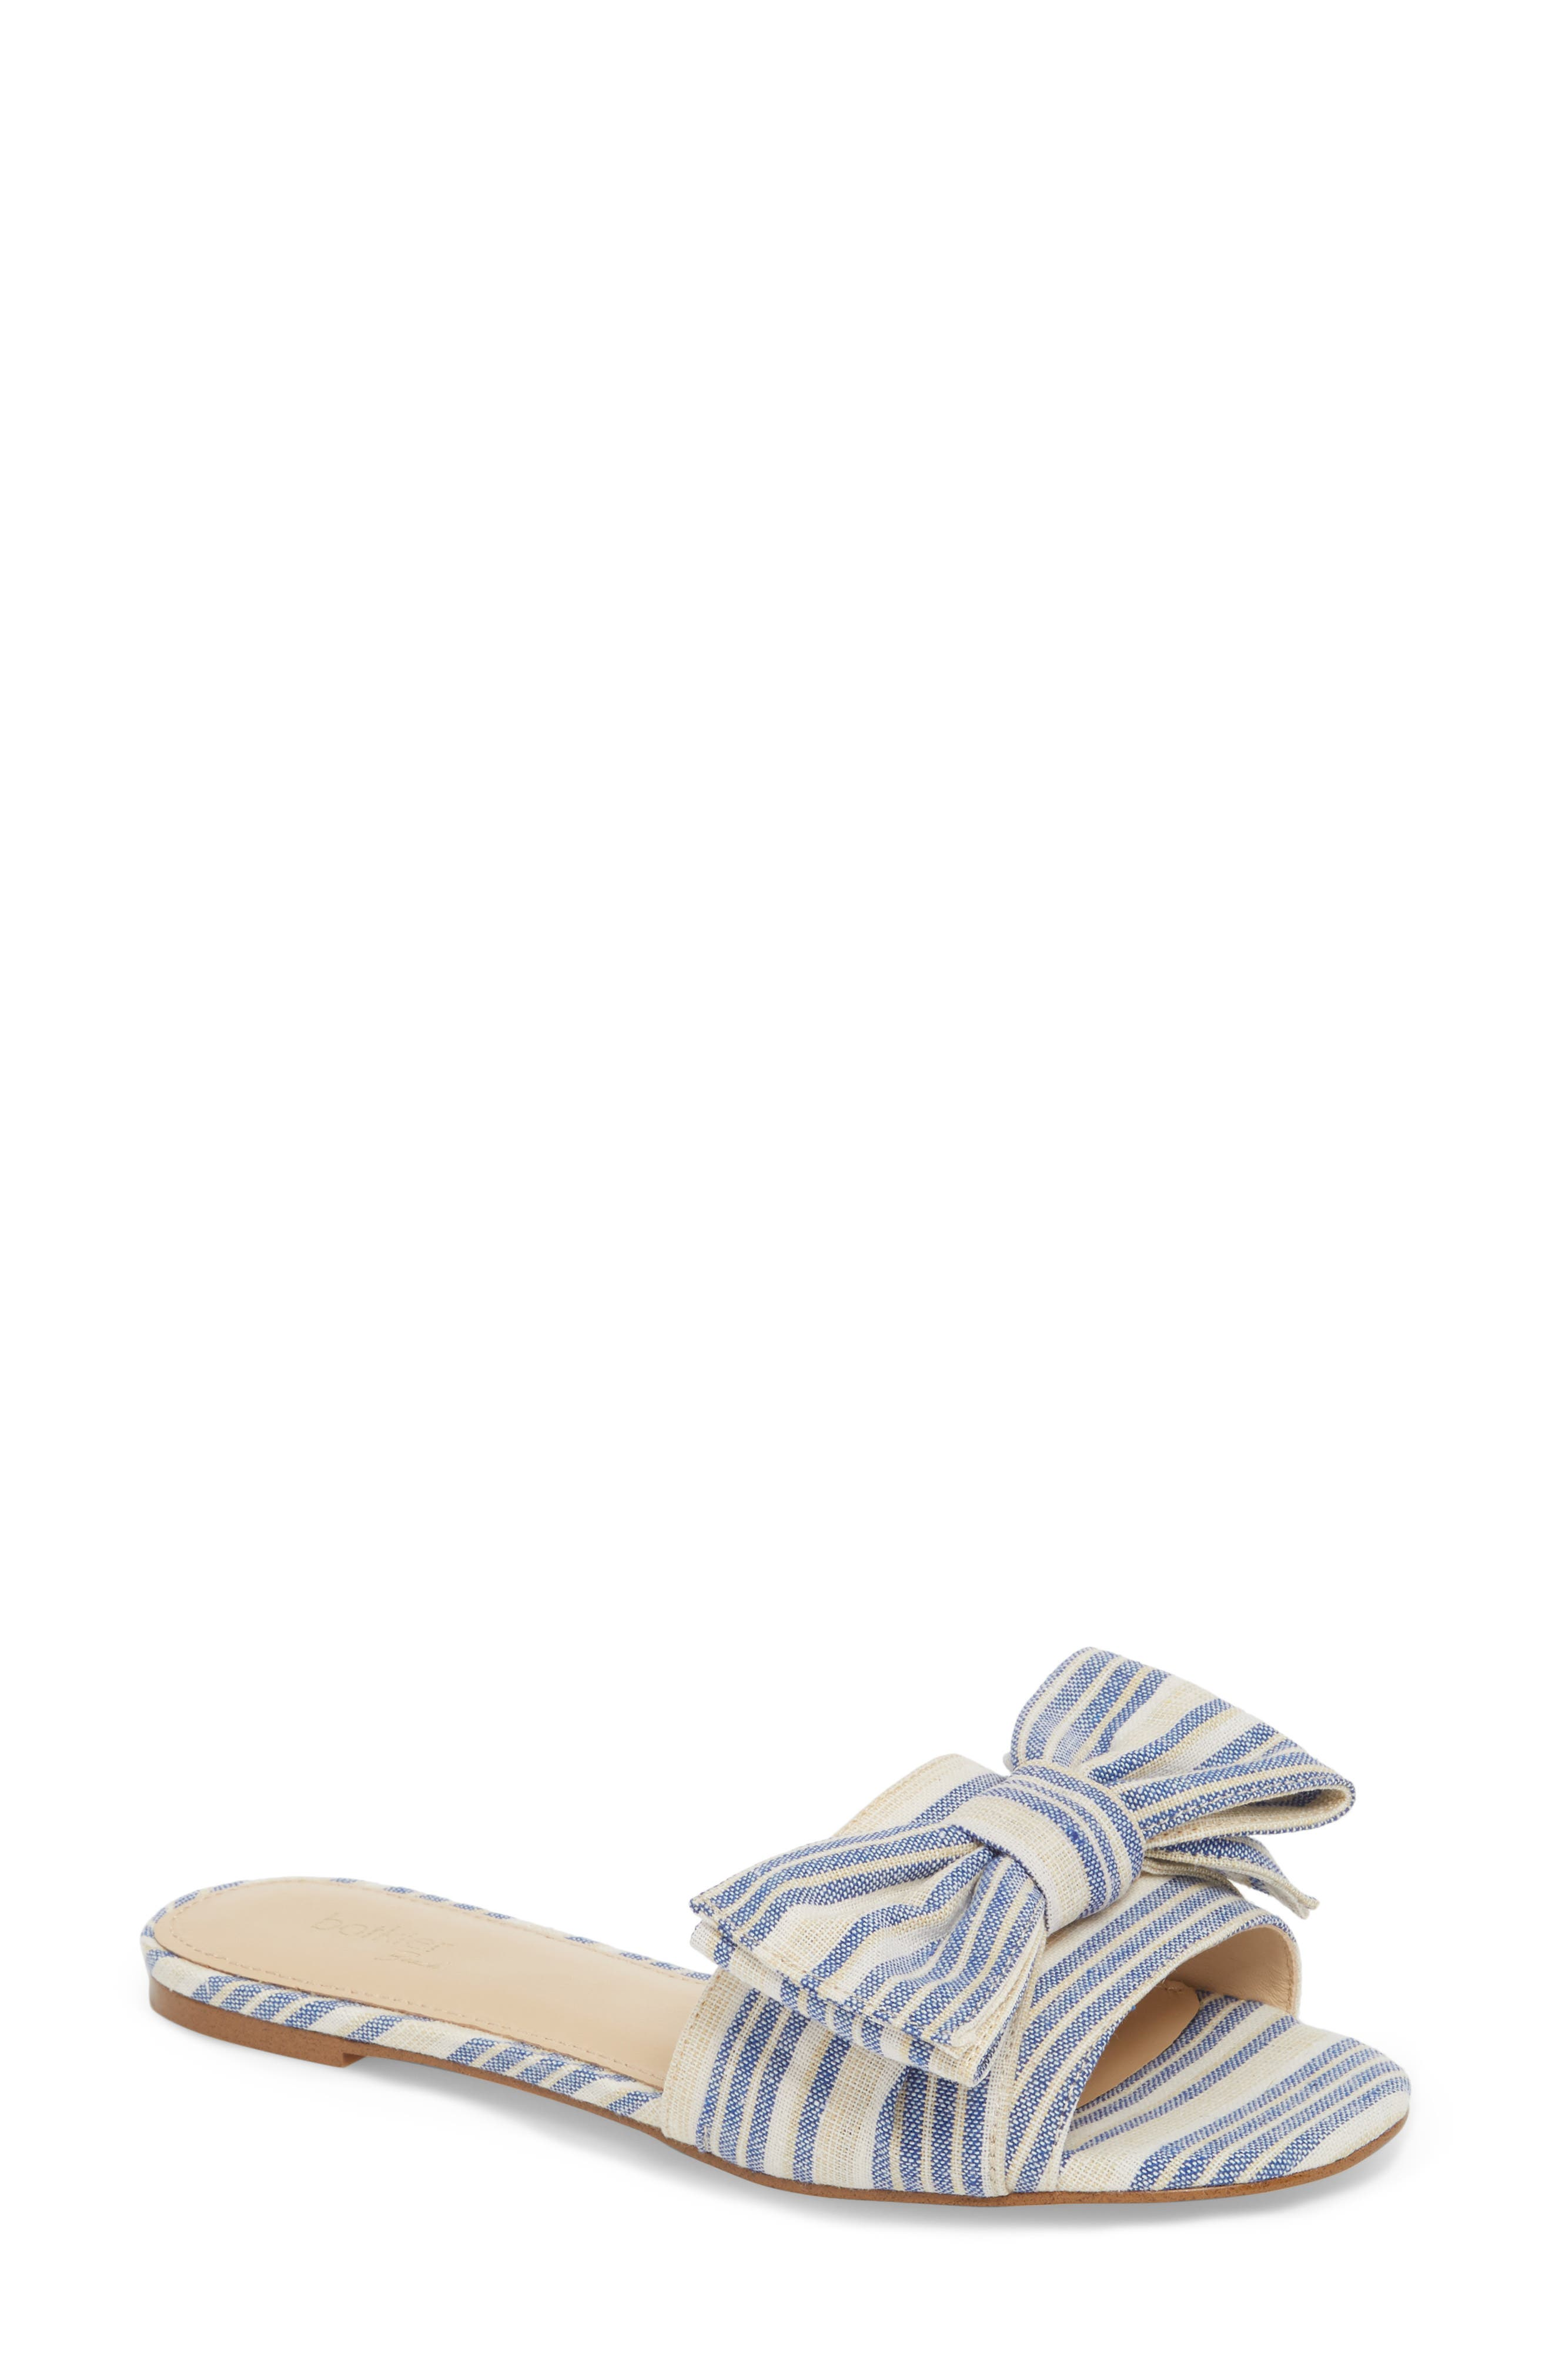 Botkier Marilyn Slide Sandal (Women)